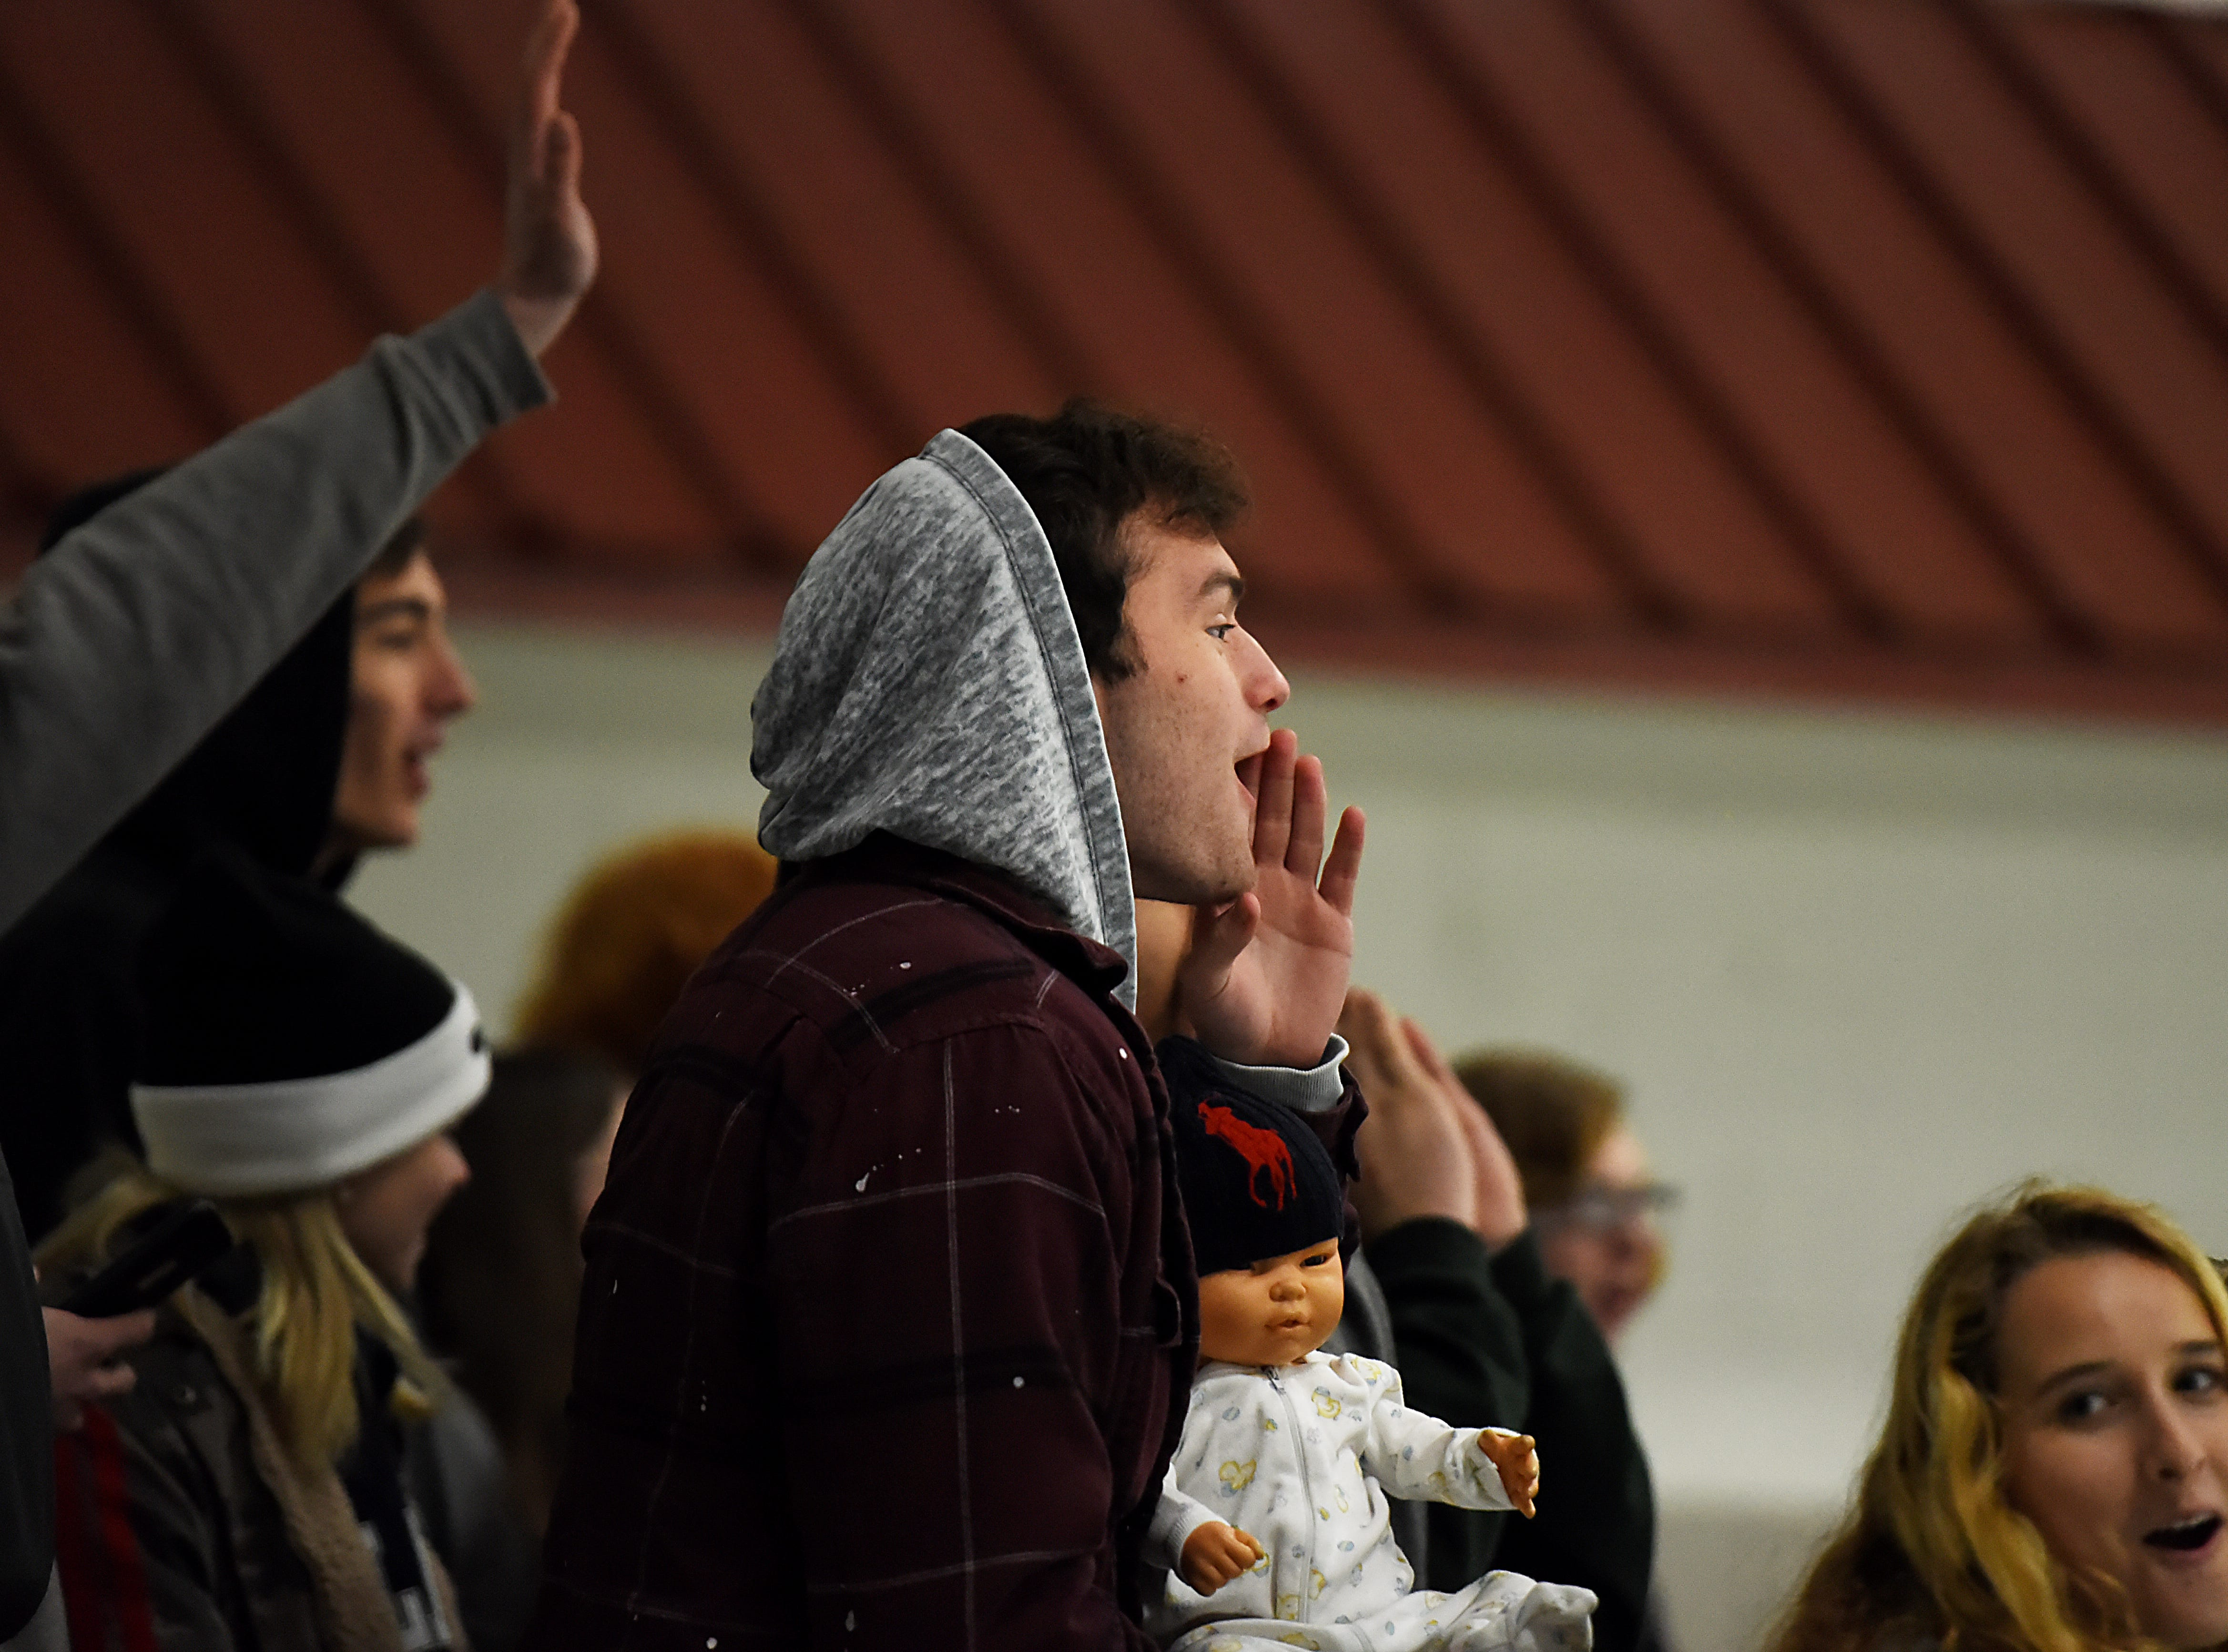 Kinnelon vs. West Morris hockey game at Skylands Ice World in Stockholm on Friday January 11, 2019. The crowd cheers after Kinnelon scores.